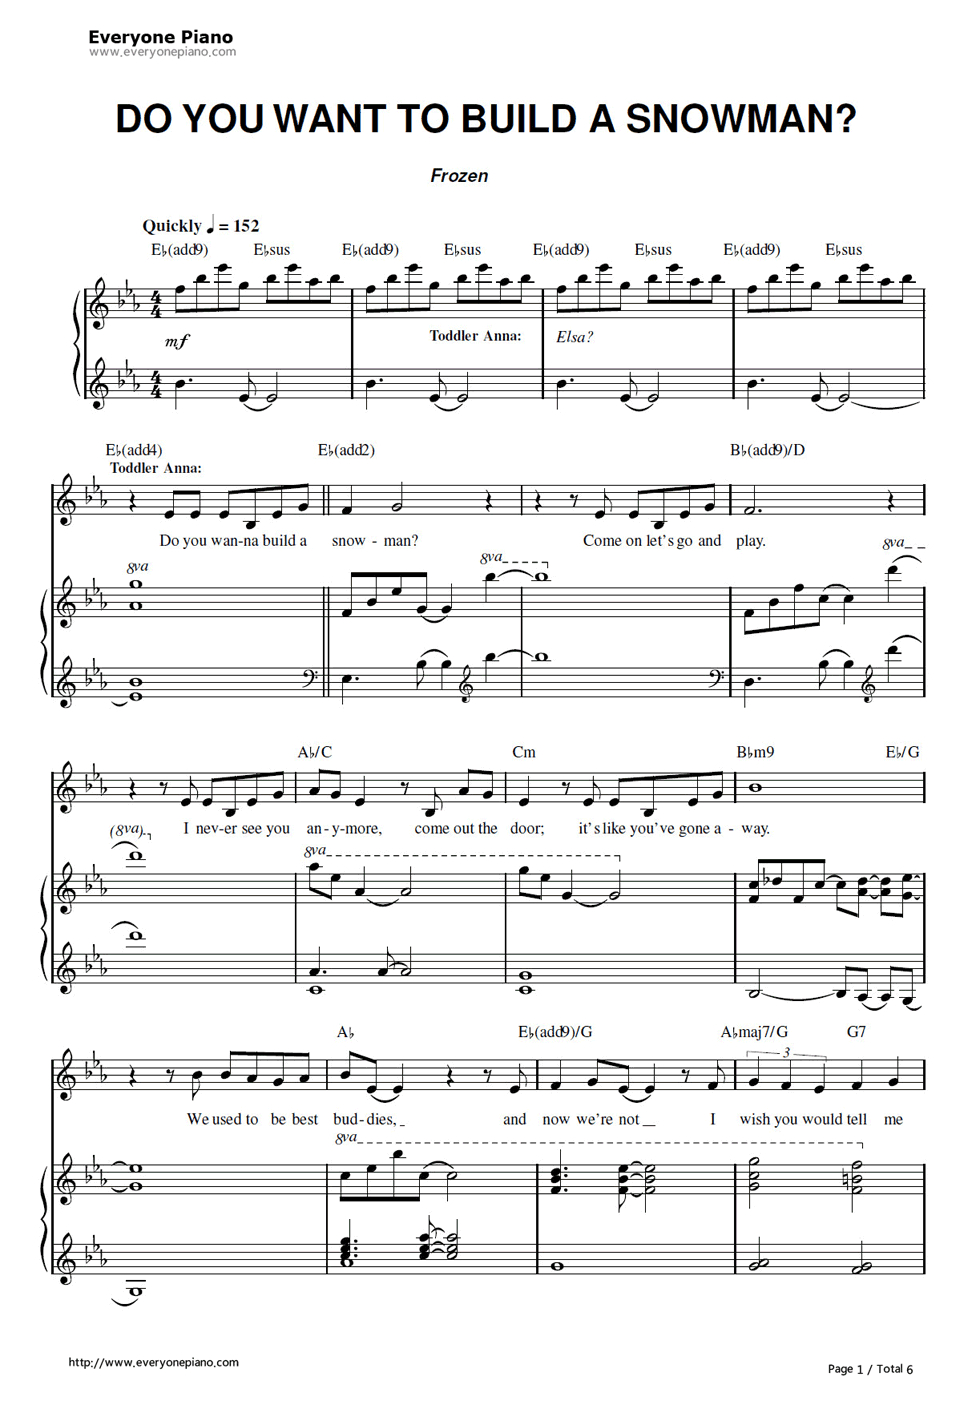 Free Do You Want To Build A Snowman-Frozen Ost Sheet Music Preview 1 - Free Printable Clarinet Sheet Music